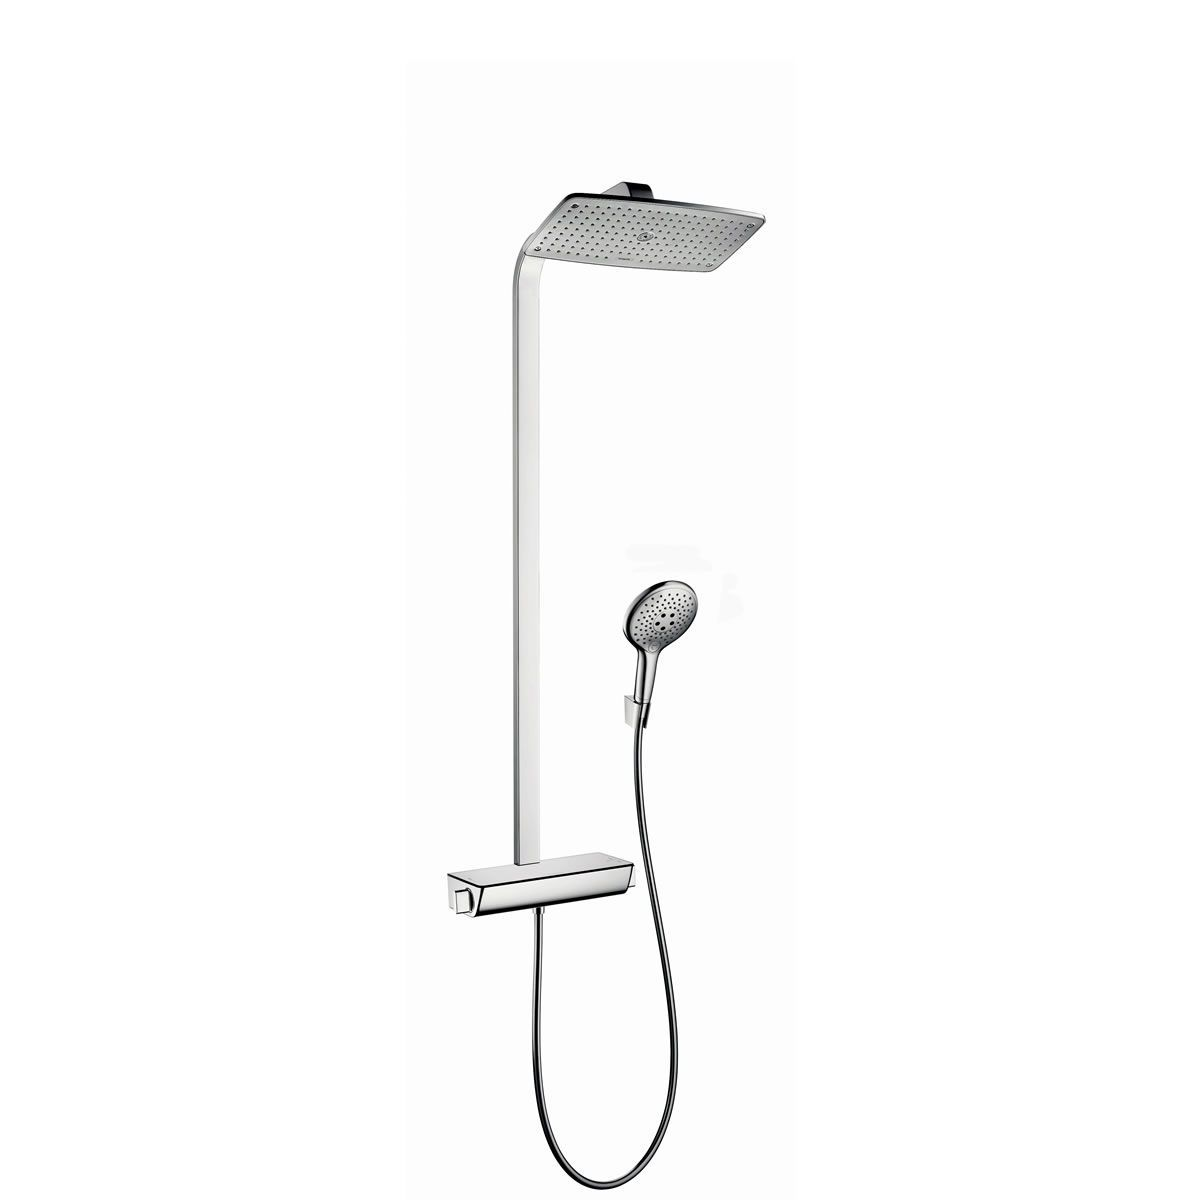 hansgrohe raindance select showerpipe 360 shower system uk bathrooms. Black Bedroom Furniture Sets. Home Design Ideas